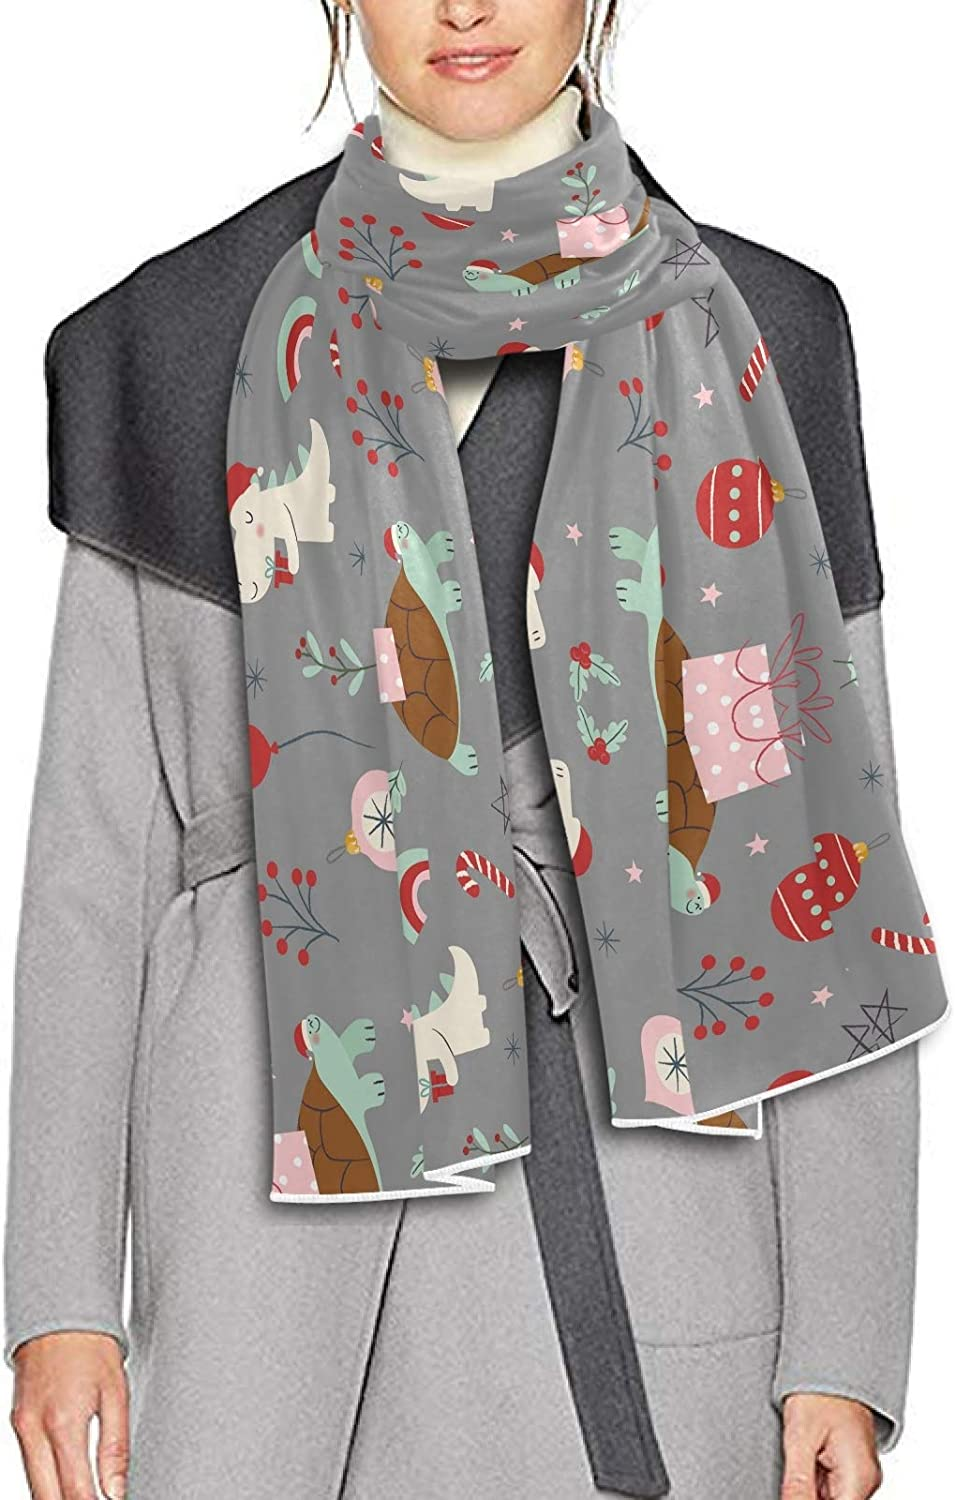 Scarf for Women and Men Christmas (2) Blanket Shawl Scarves Wraps Thick Soft Winter Large Scarves Lightweight